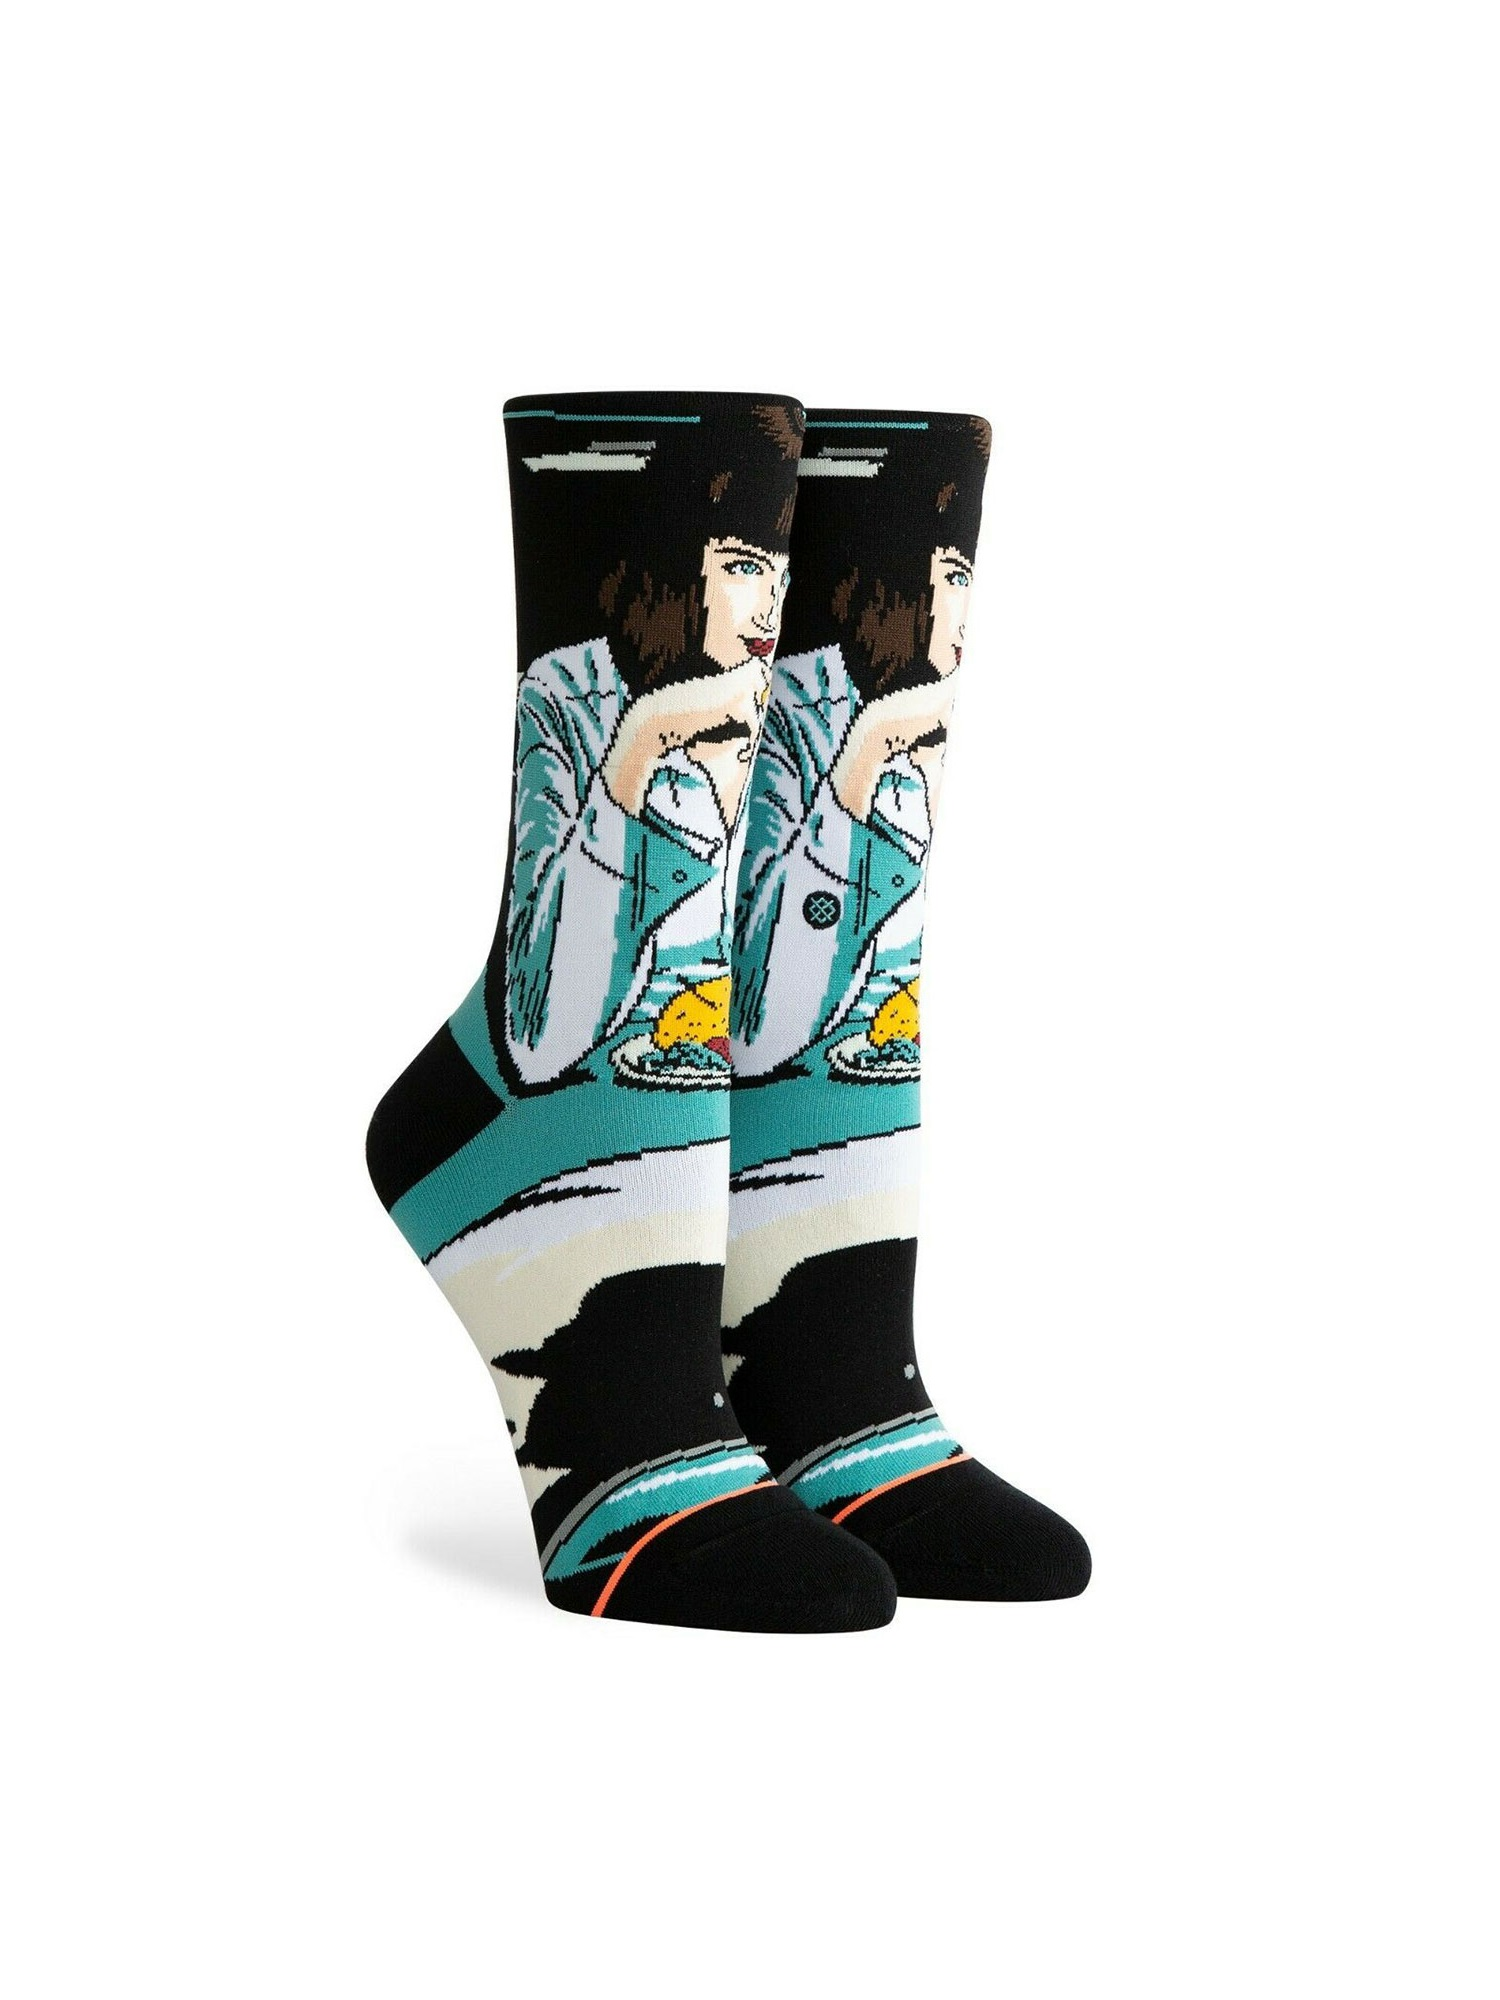 Stance Women/'s Mia Booth Crew Socks in Teal